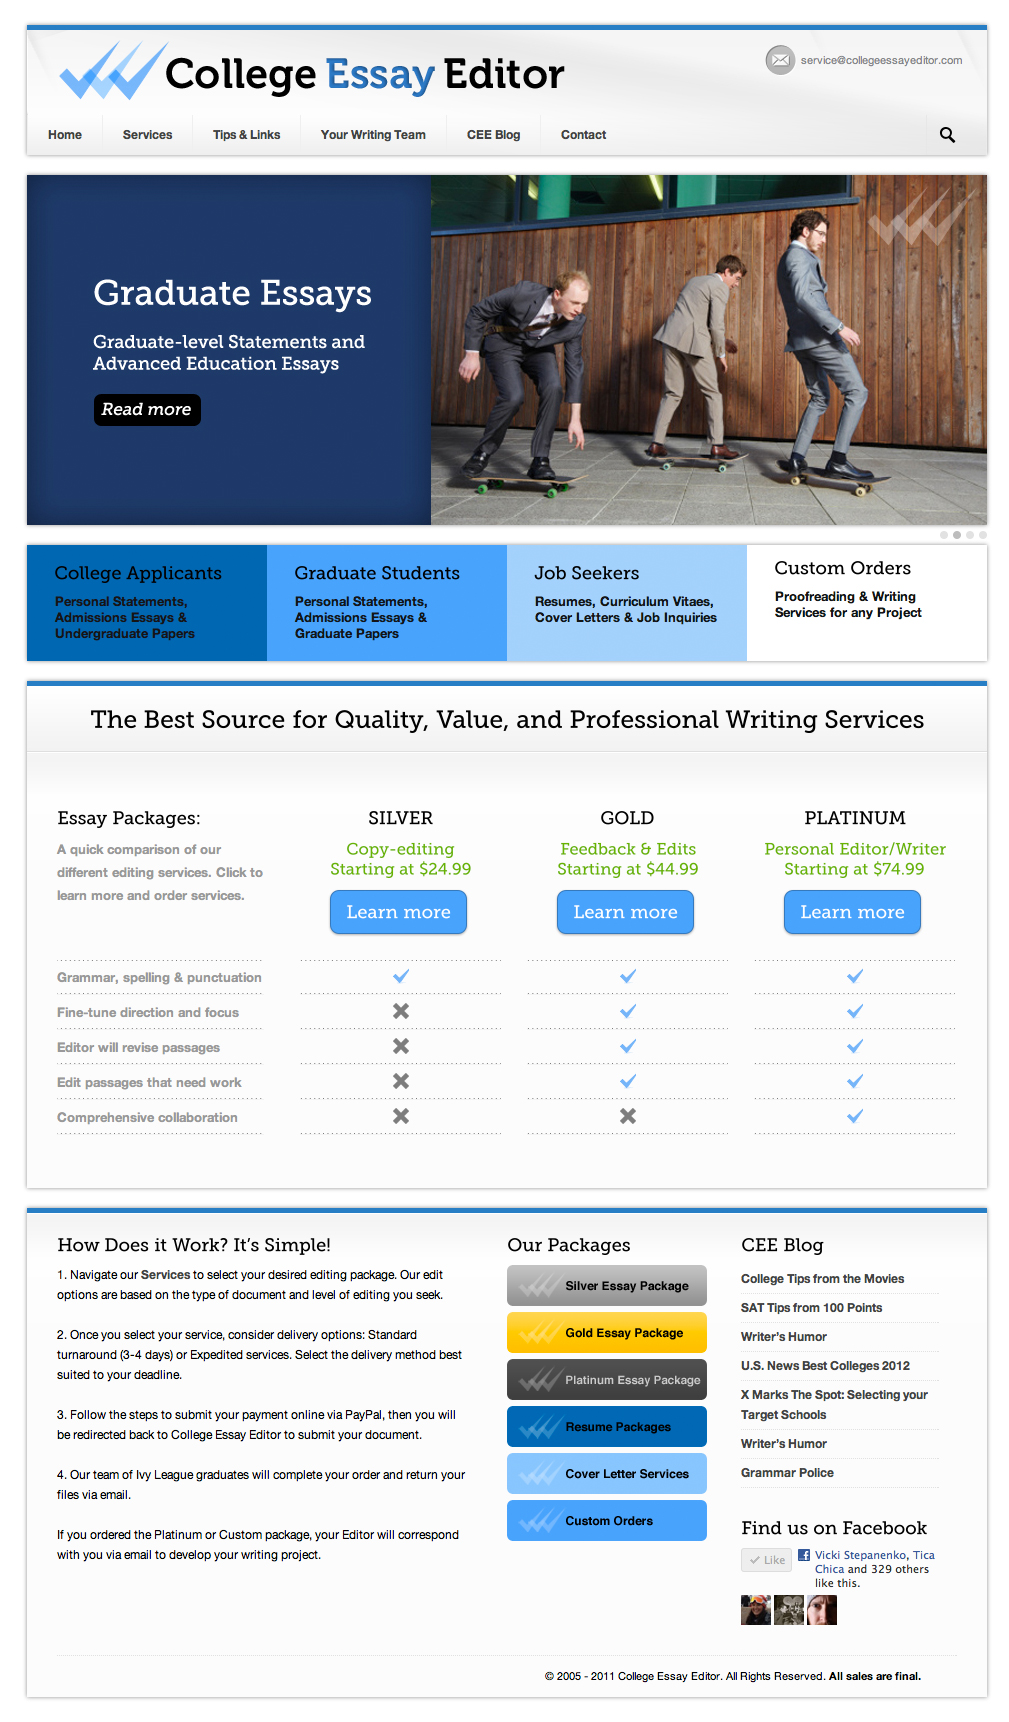 online essay editing sites Our website is available 24 hours a day all year round you can submit your document and pay online even if you finish your essay at 3am you can choose when you want to use our proofreading and editing service, and you will generally receive an order confirmation email within an hour no other company can provide.